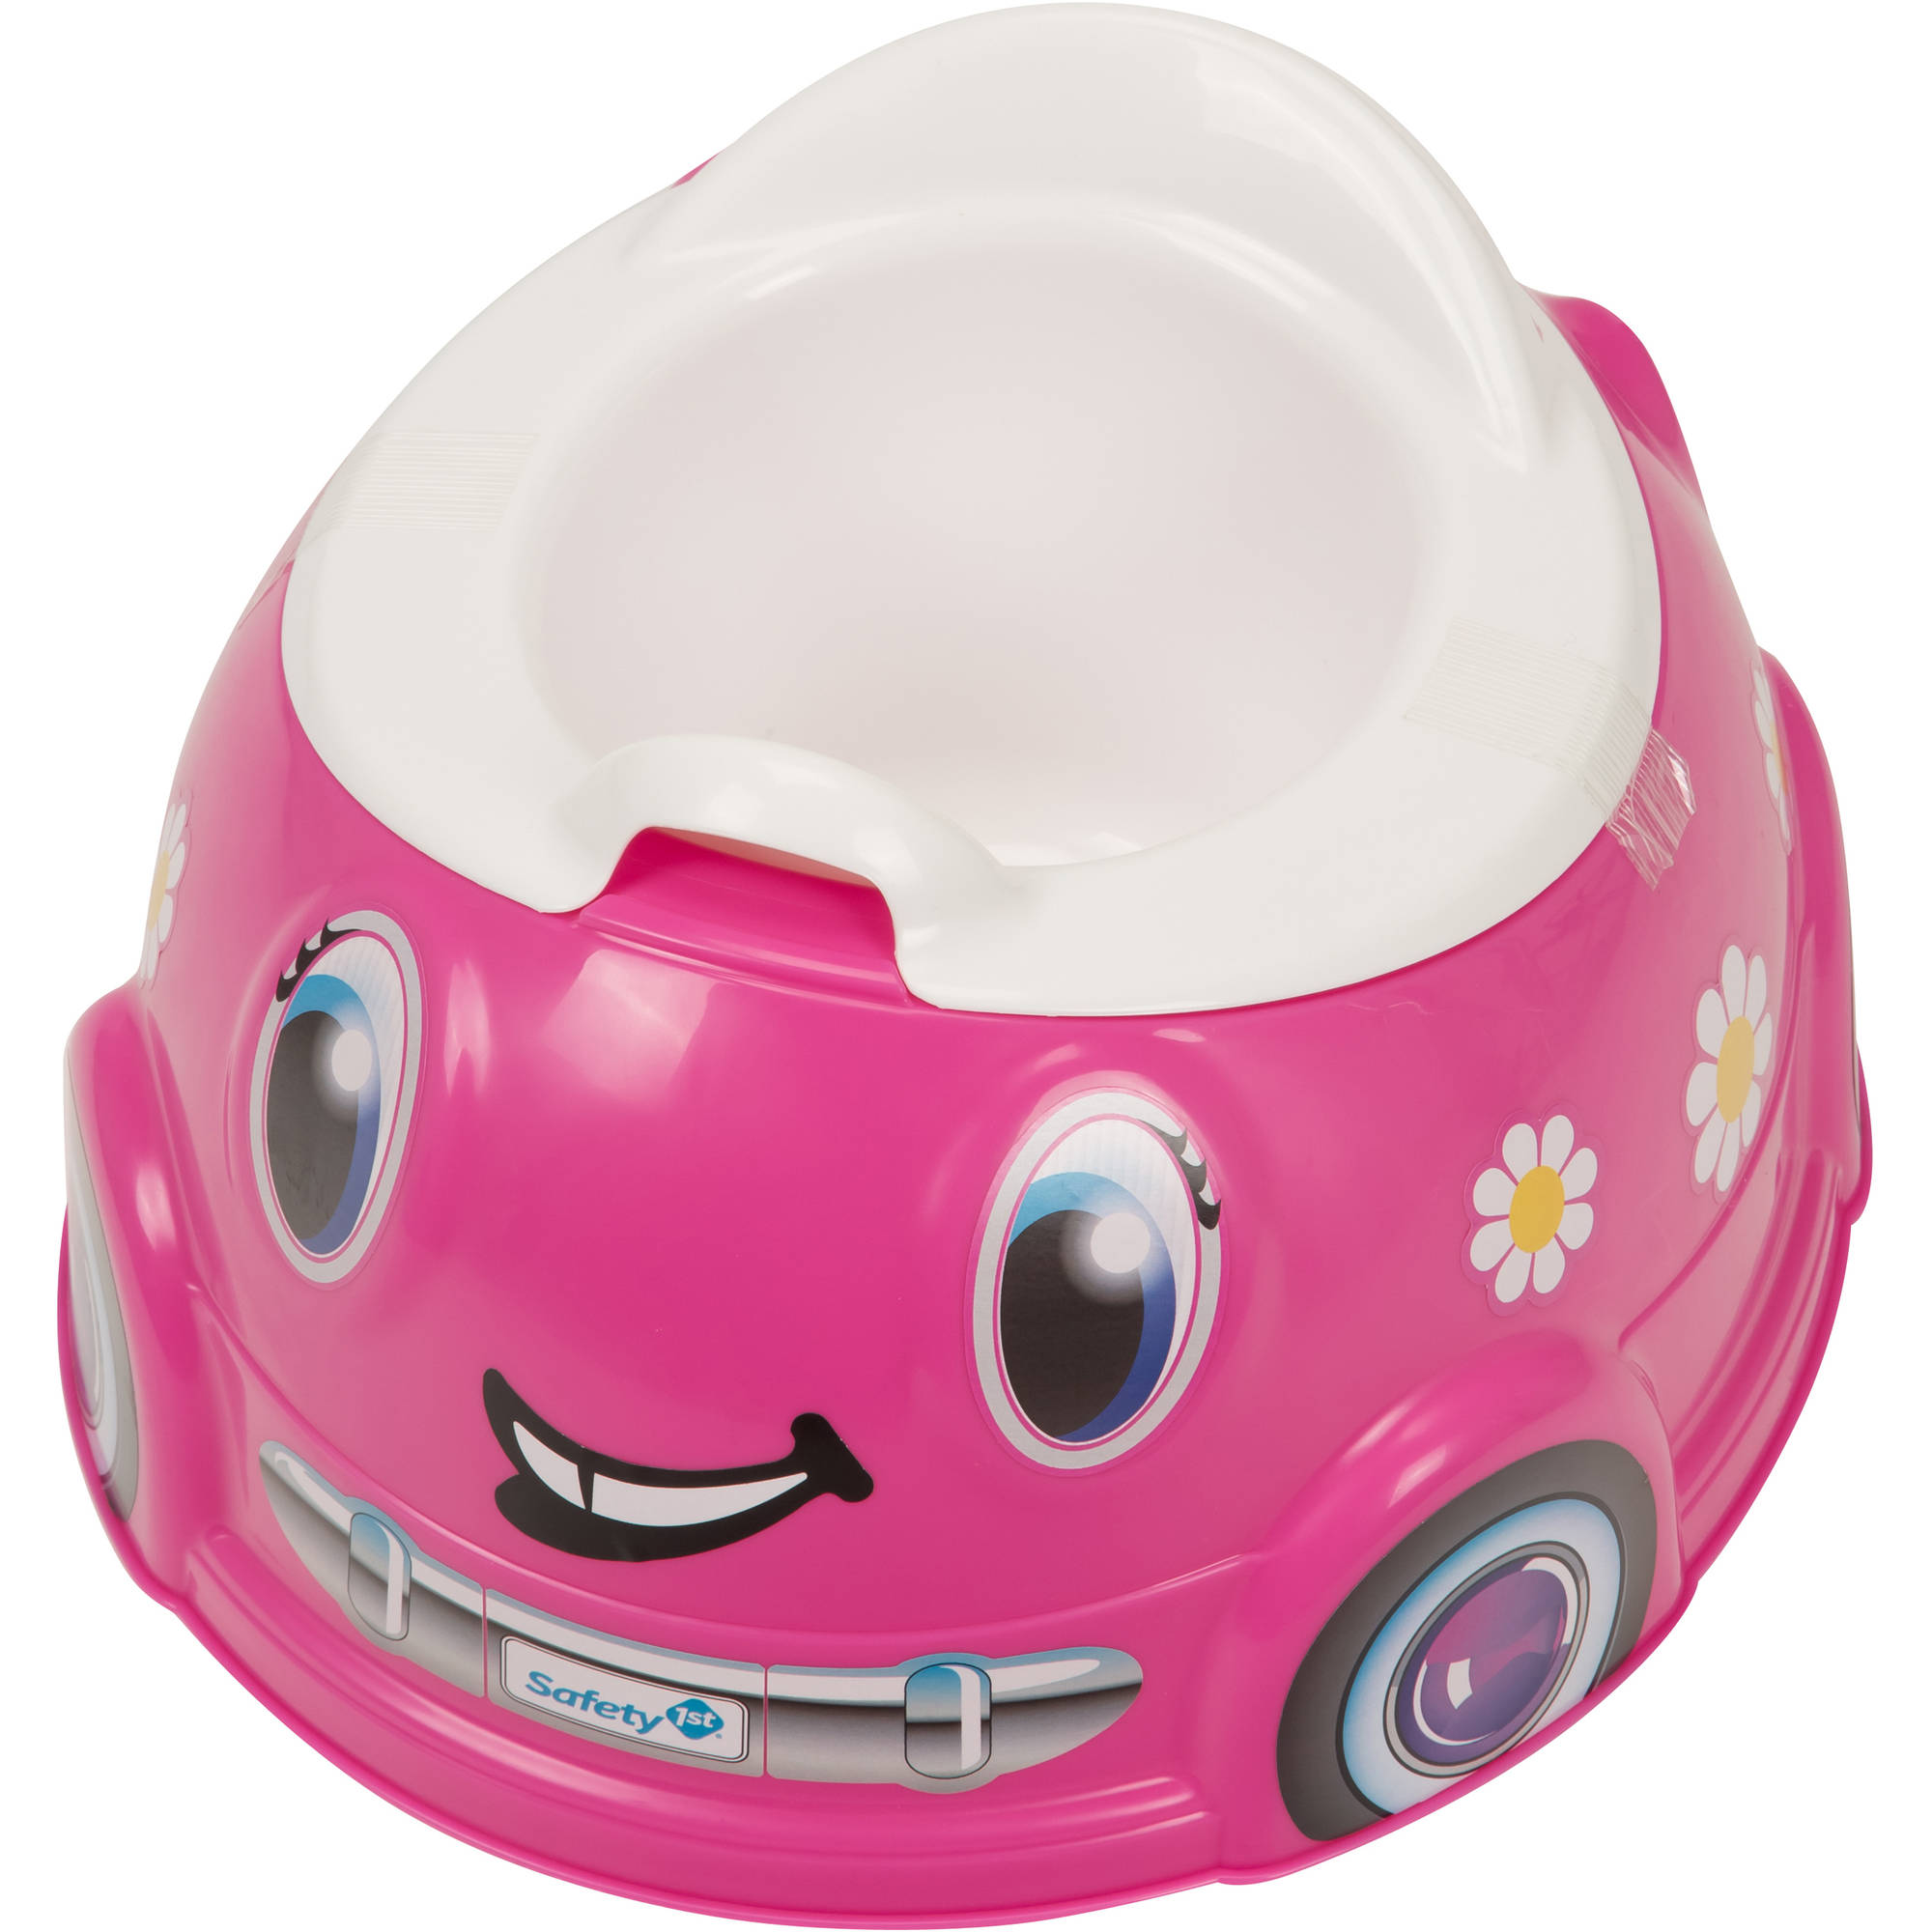 Safety 1st Fast and Finished Car Potty, Pink